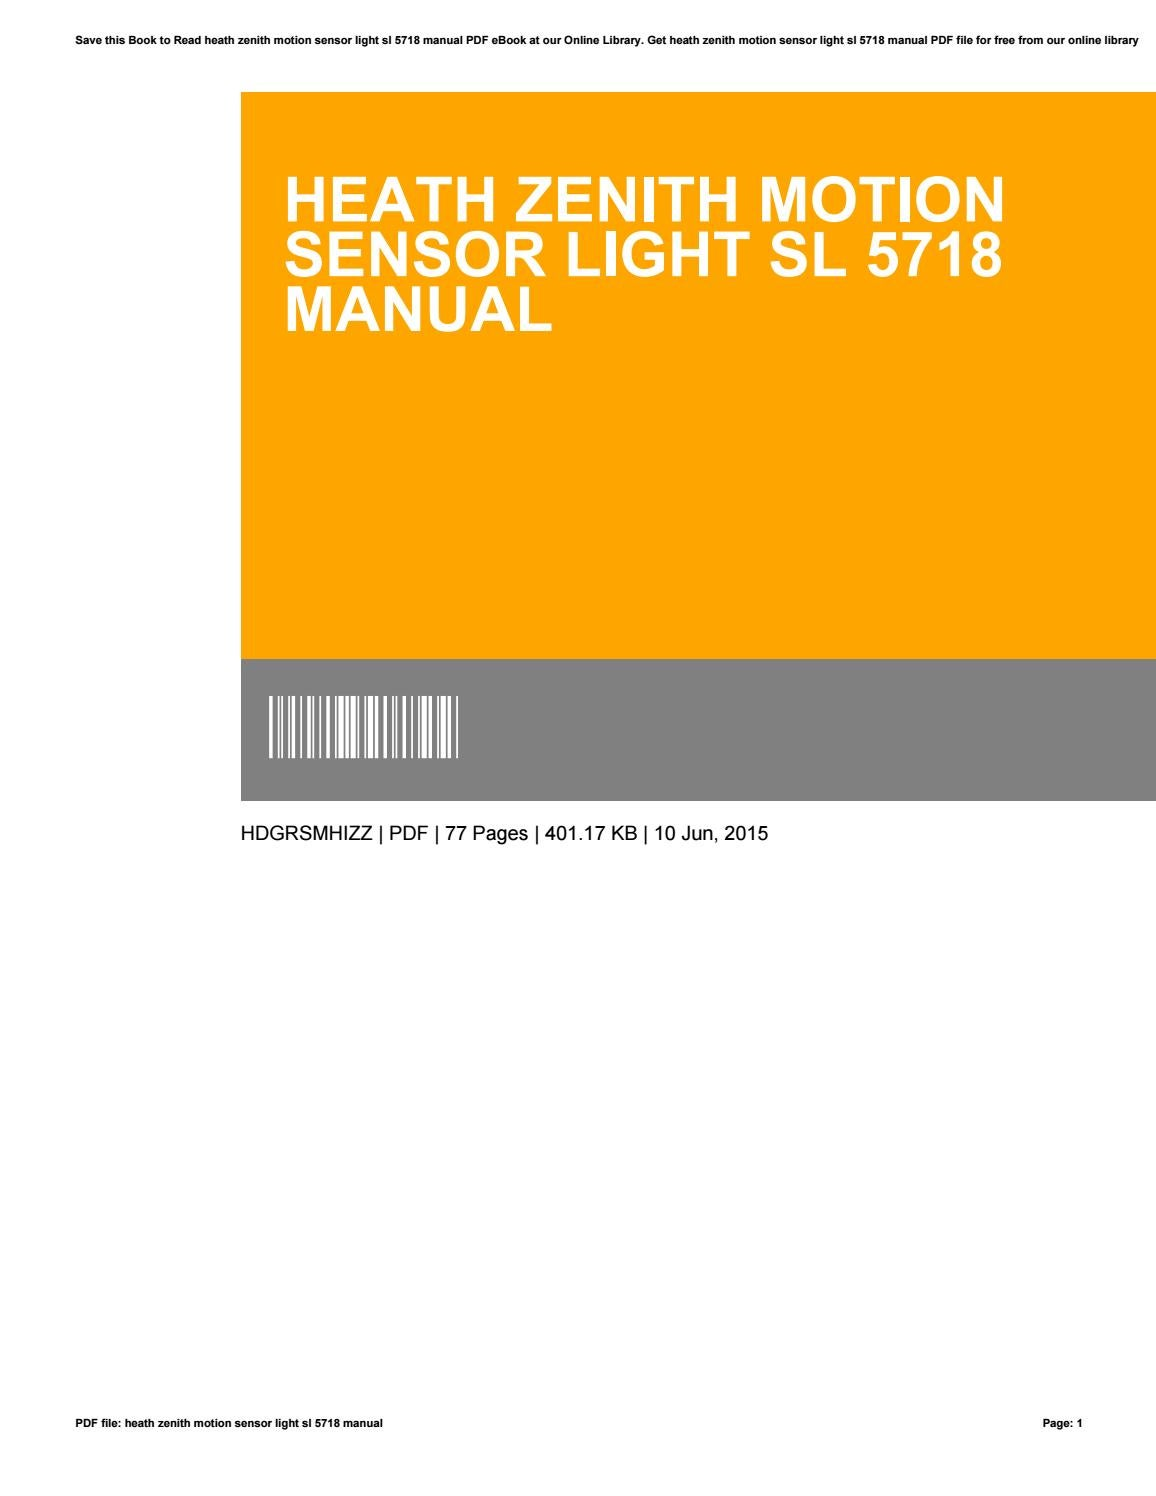 Heath zenith motion sensor light sl 5718 manual by DonnaMatson1784 - issuu